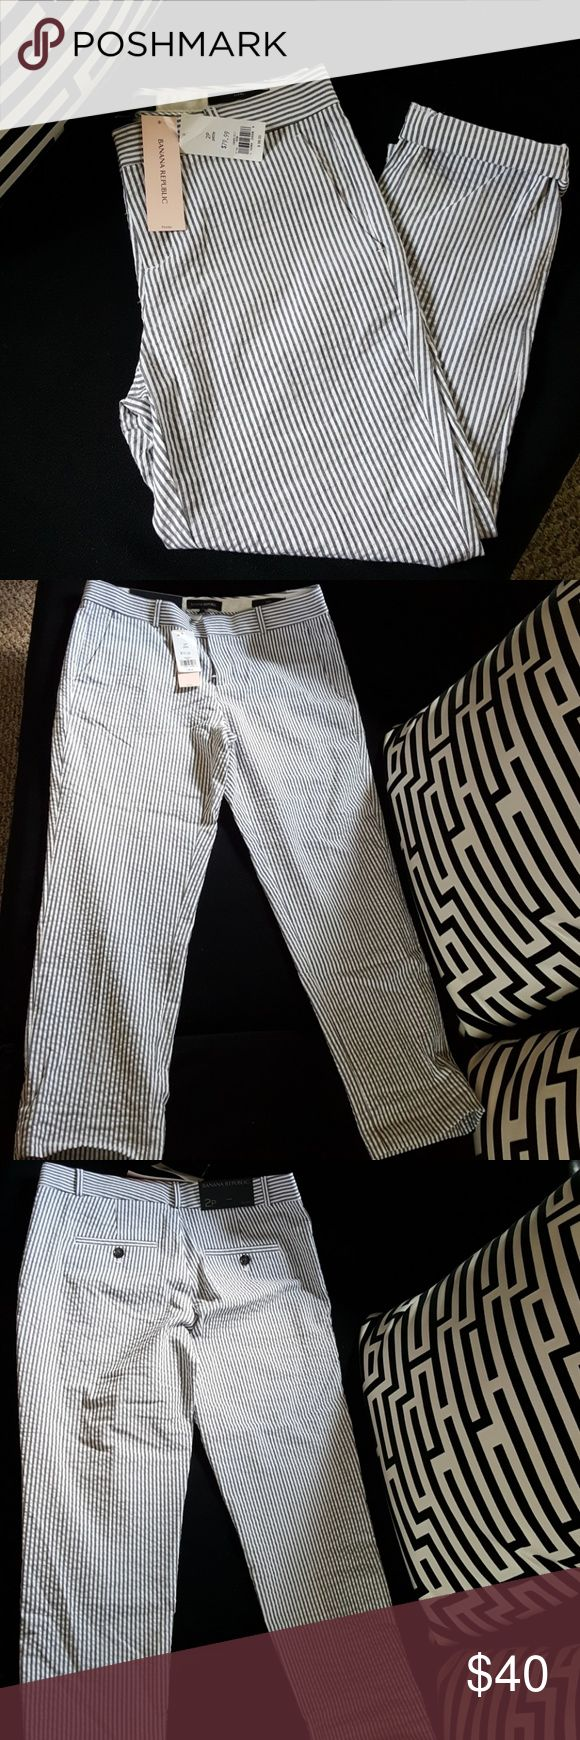 Banana Republic Avery Fit Pants Gray striped petite sized pants. Can be cropped for a person a size 4. Lightweight cotton, great for summer. Can be dressed up or down. FIRM ON PRICE!! PLEASE BE CONSIDERATE AND REMEMBER SHIPPING COSTS ARE TAKEN OUT OF PROFIT.  THANKS A BUNCH♡ Banana Republic Pants